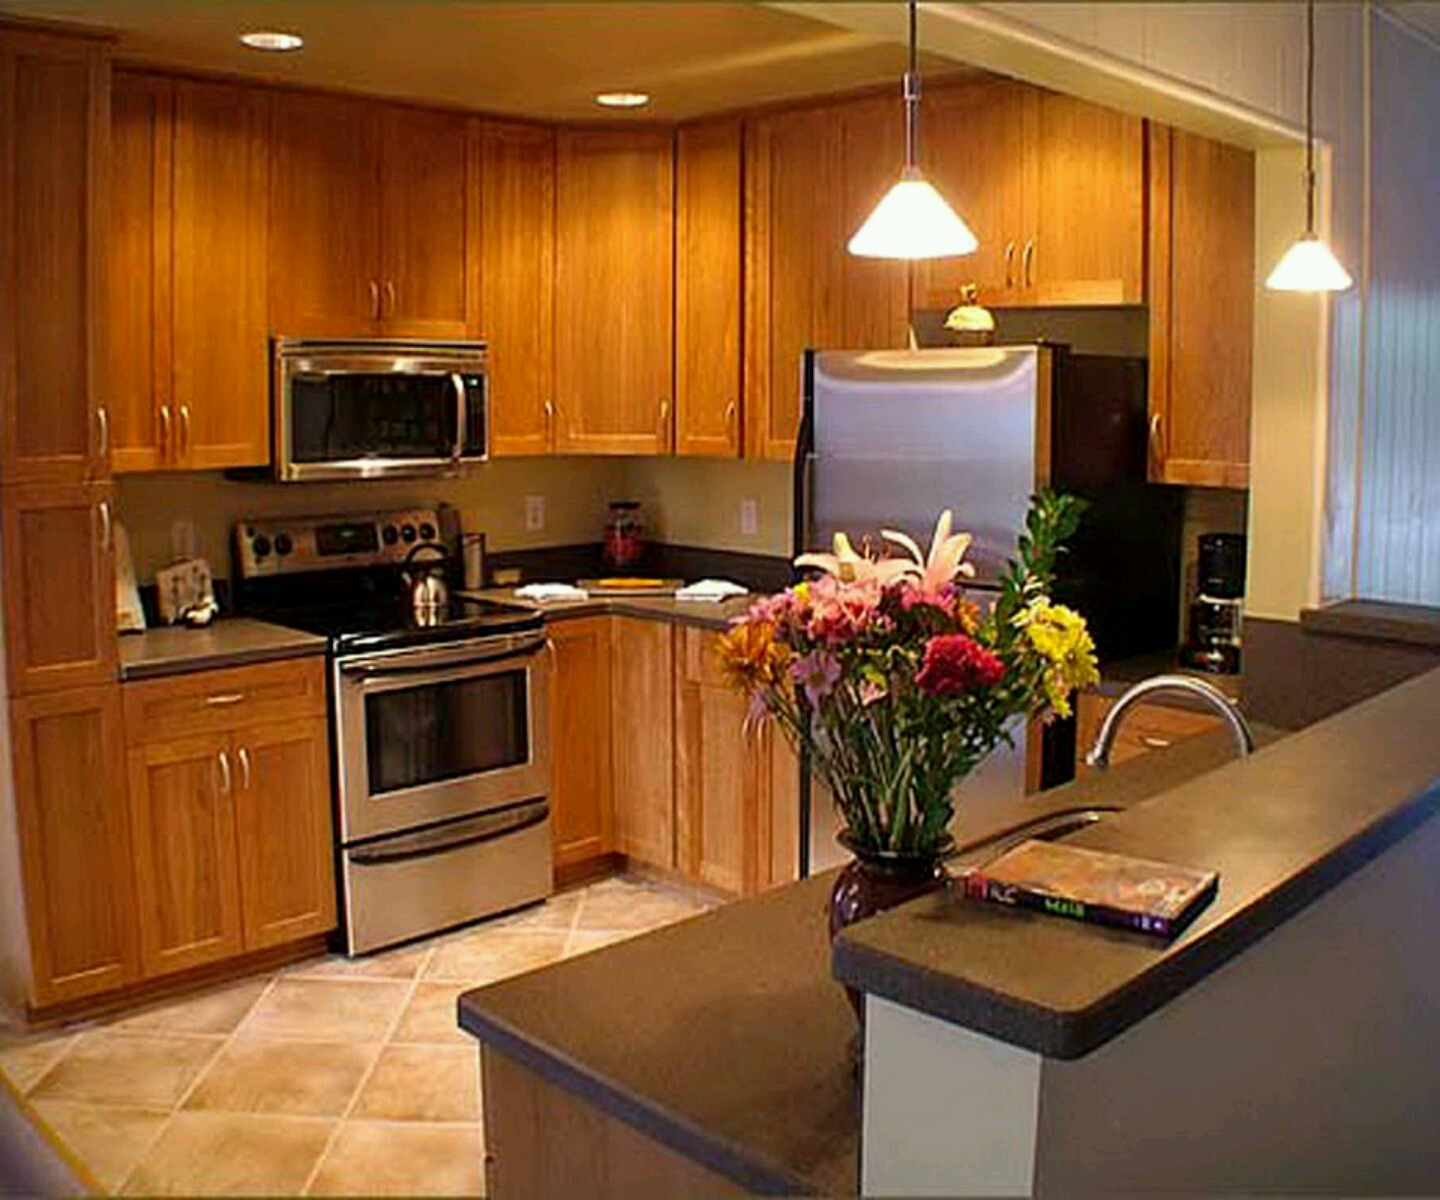 Modern Kitchen Paint Colors With Oak Cabinets: مطبخ مودرن مصنوع من الخشب